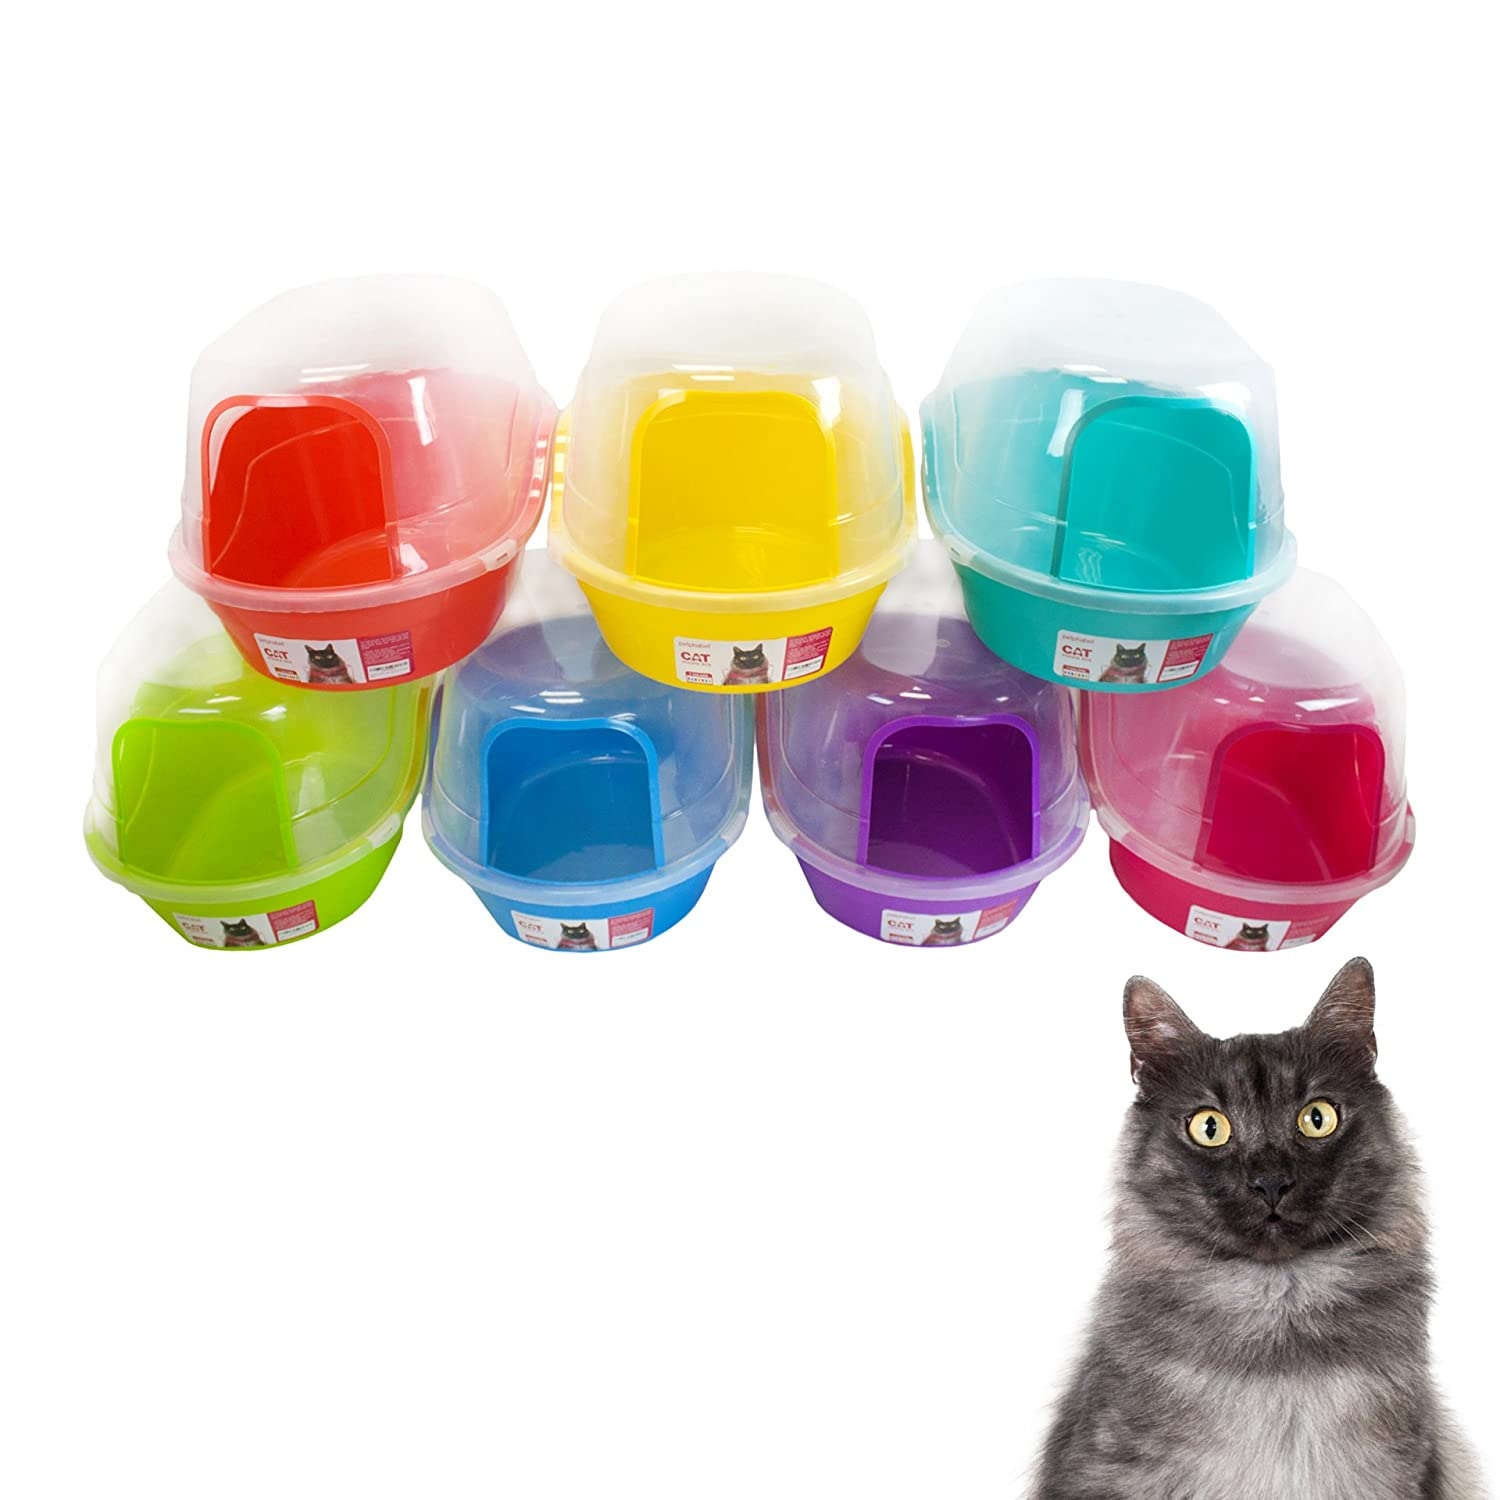 Petphabet Litter Box with Lid - Jumbo Hooded Kitty Litter Pan - Holds Up to Two Small Cats Simultaneously, Extra Large